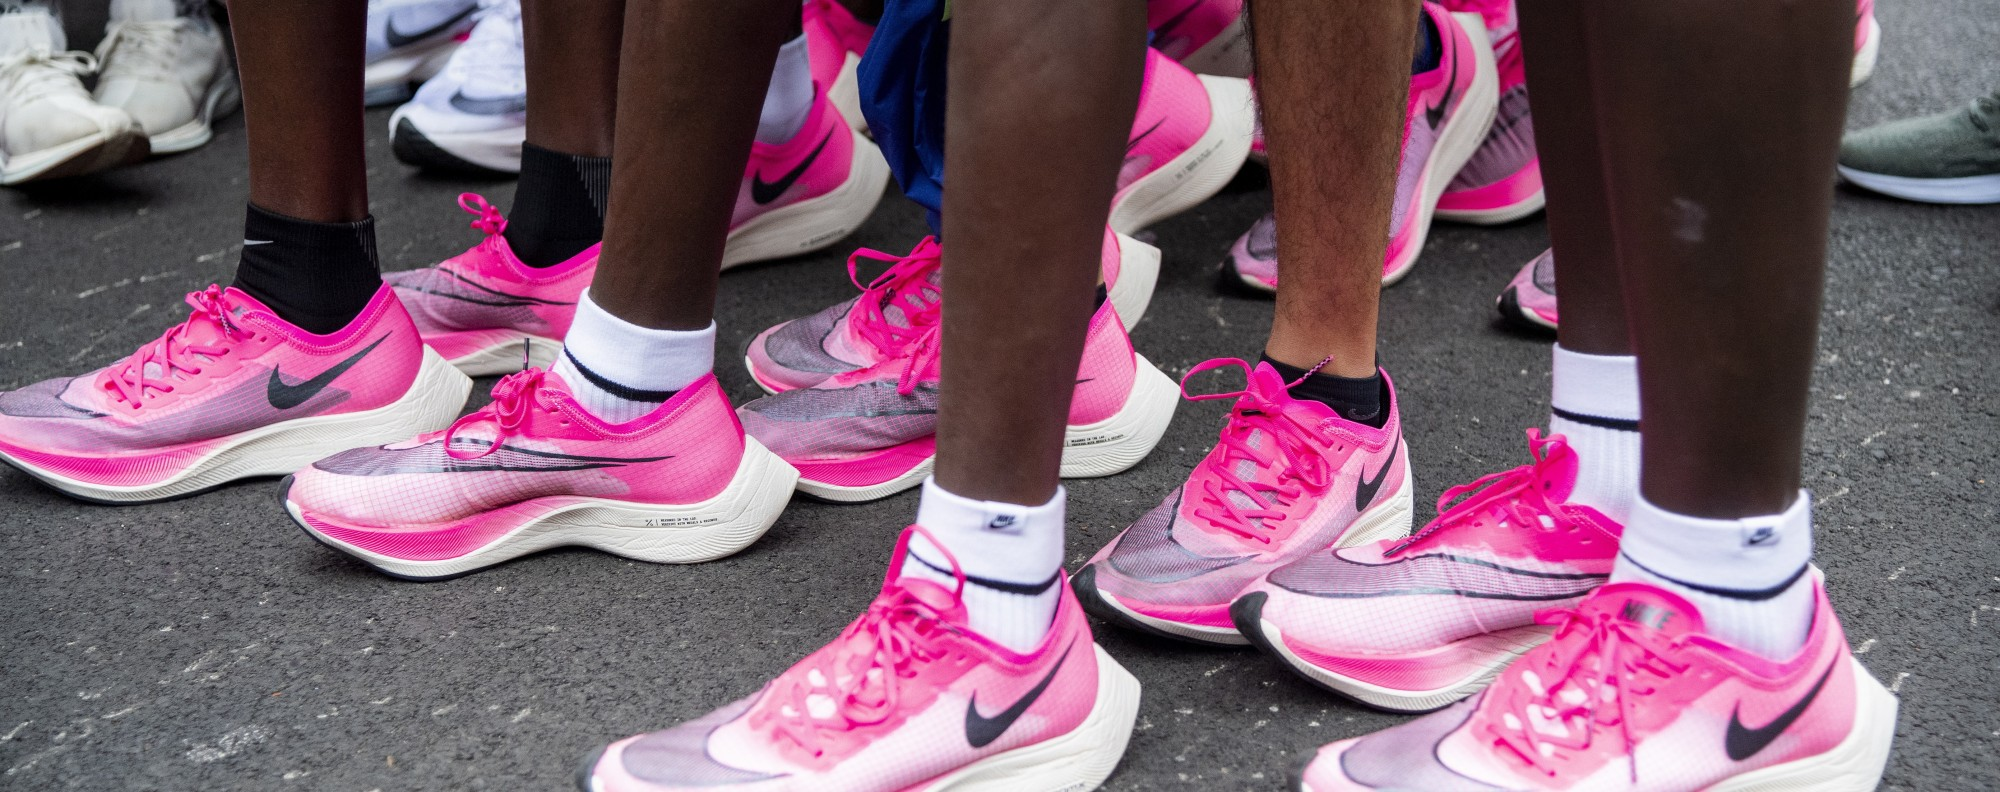 Eliud Kipchoge and his pacers wear Vaporfly when he sets the unofficial marathon world record at 1 hour 59 minutes 40 seconds at the event. Photo: EPA-EFE